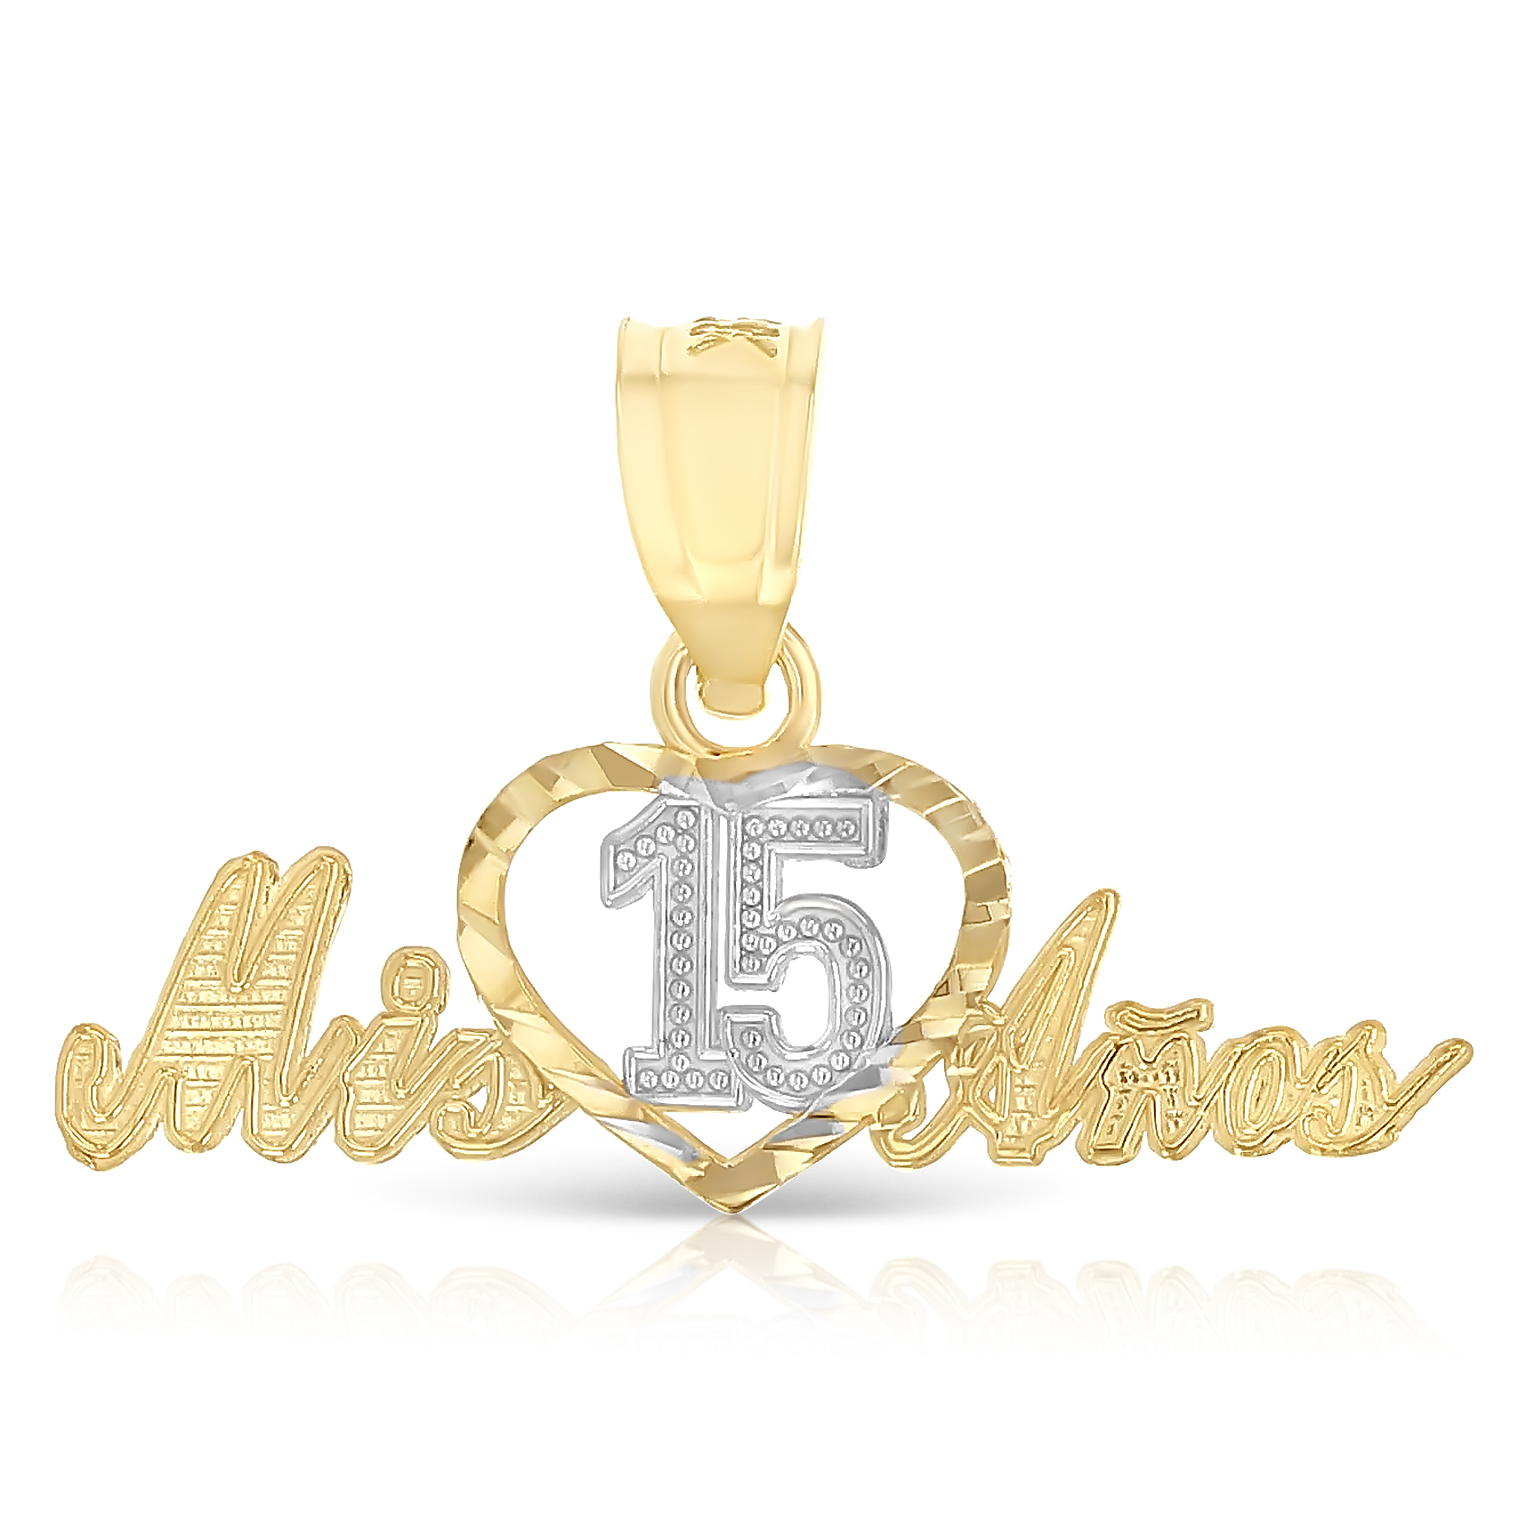 14K Two Tone Gold Slanted Heart Charm Pendant For Necklace or Chain